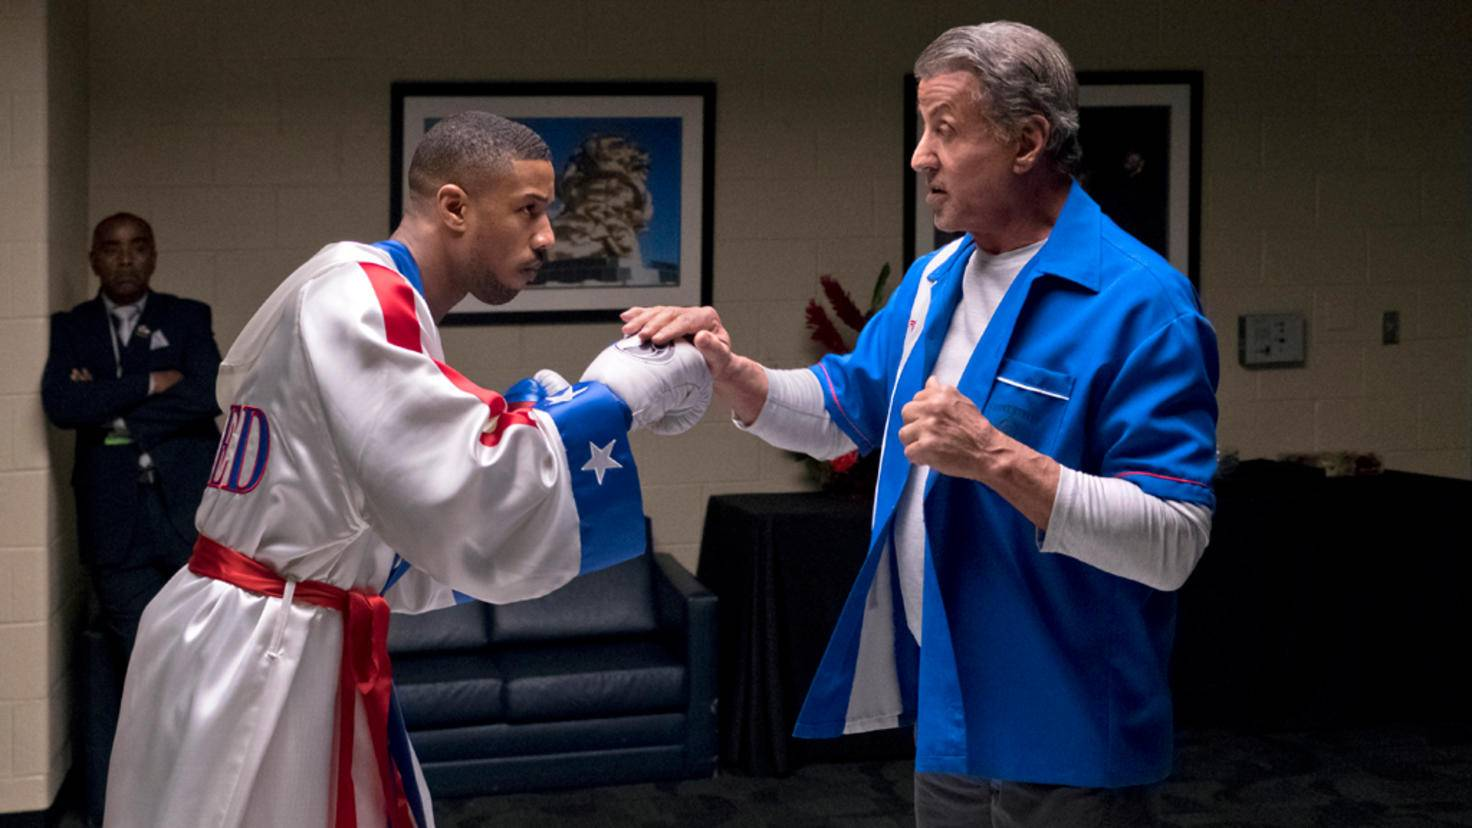 Creed 2-Jordan-Stallone-METRO-GOLDWYN-MAYER PICTURES INC. AND WARNER BROS. ENTERTAINMENT INC 2